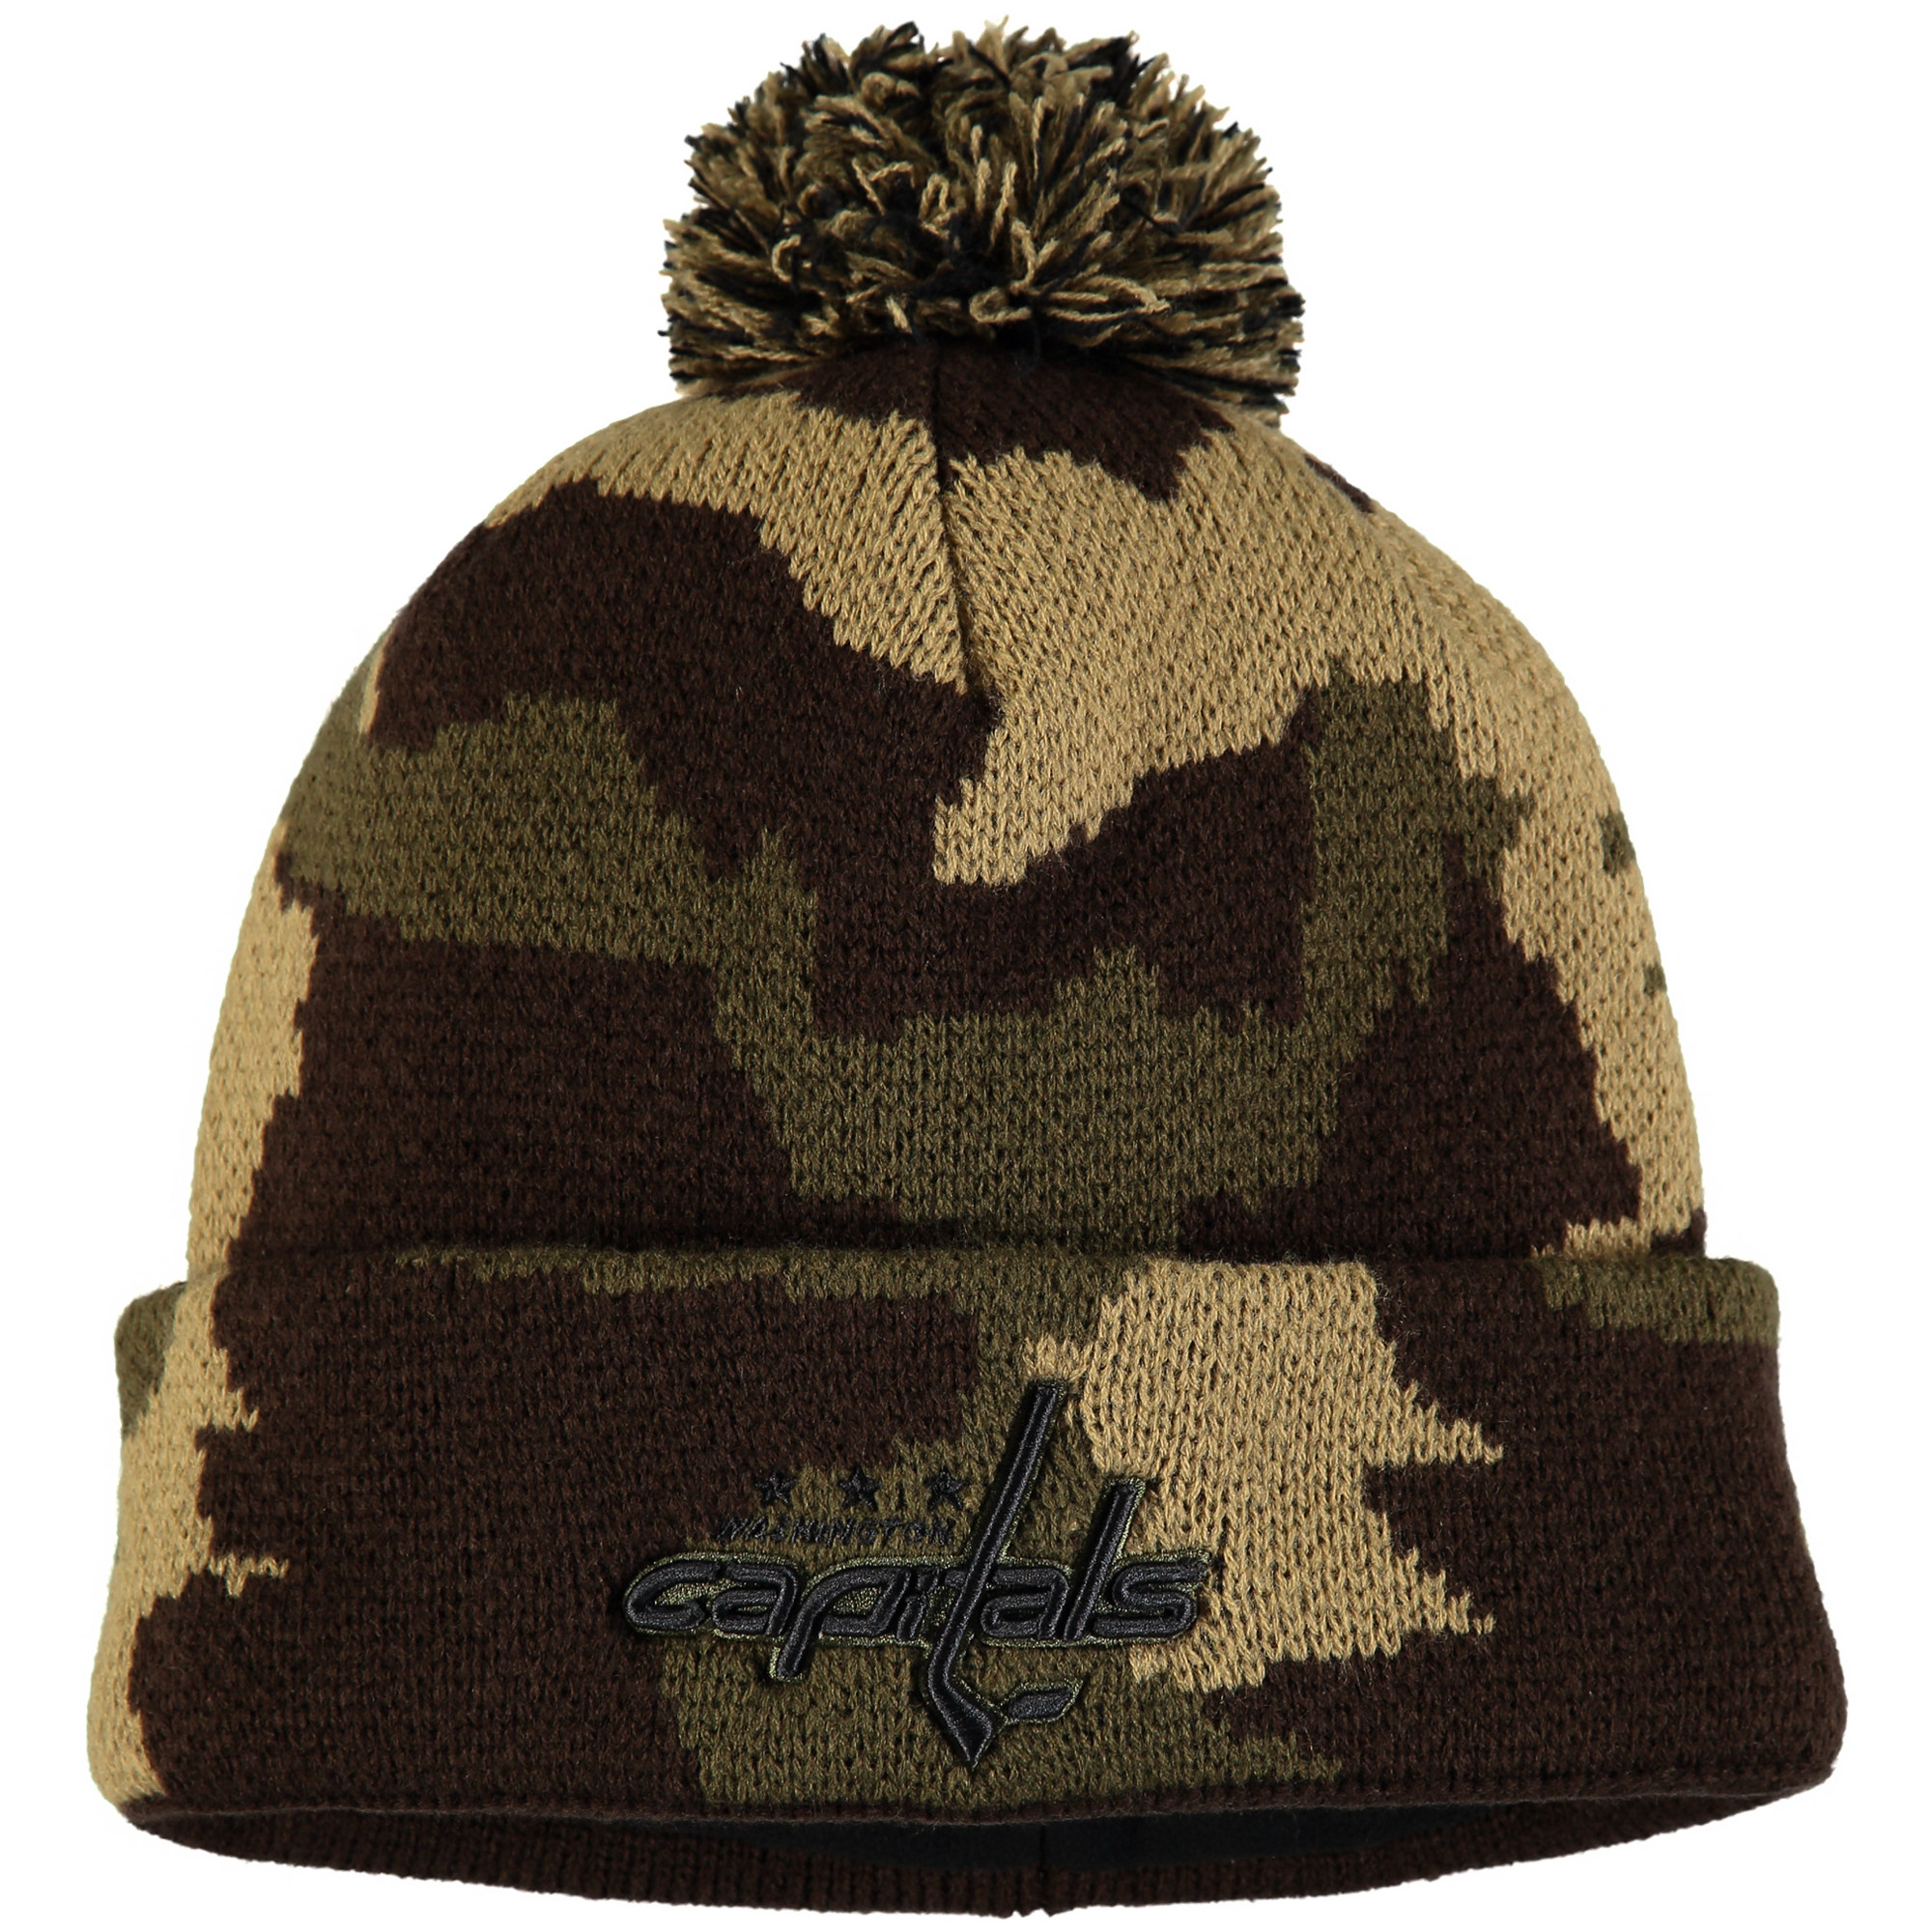 Washington Capitals Fanatics Branded Rank Knit Hat - Camo - OSFA